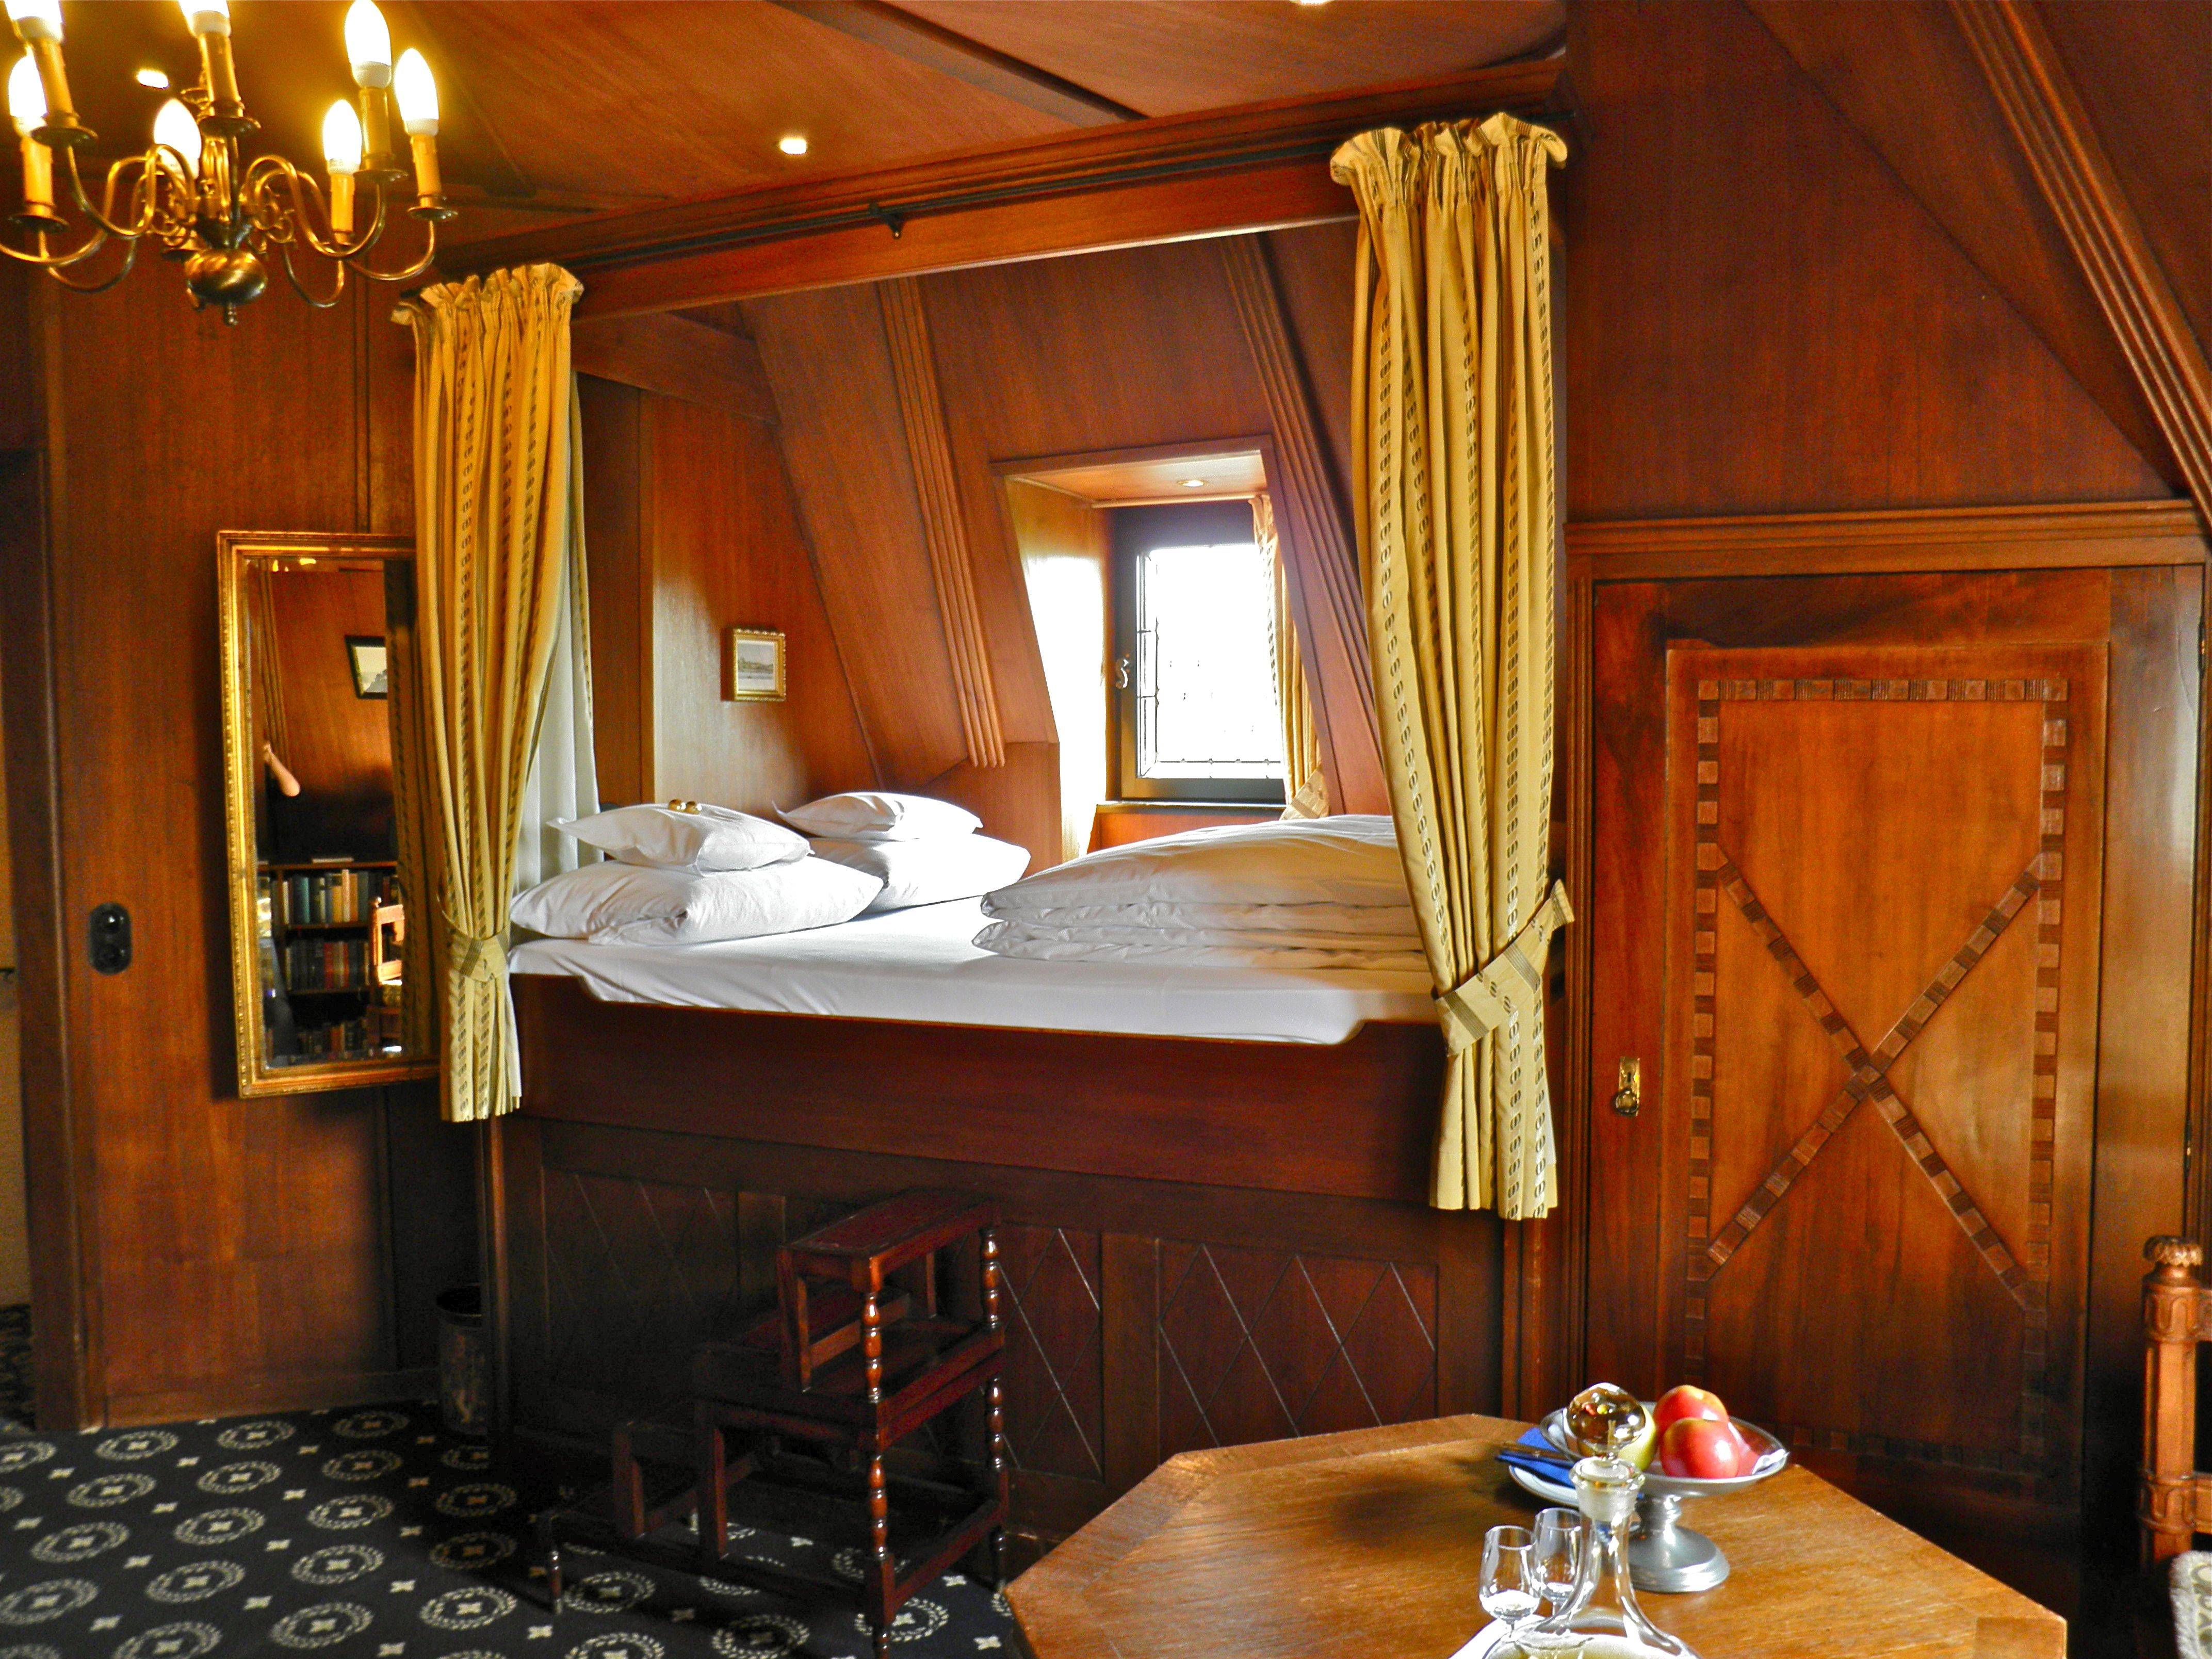 Peckforton castle hotel rooms 4 poster - Burghotel Auf Schonburg Room N 13 Suite 1st Floor With Lift 36 M Rhine River Valley Trip Pinterest Castles Rivers And Buckets